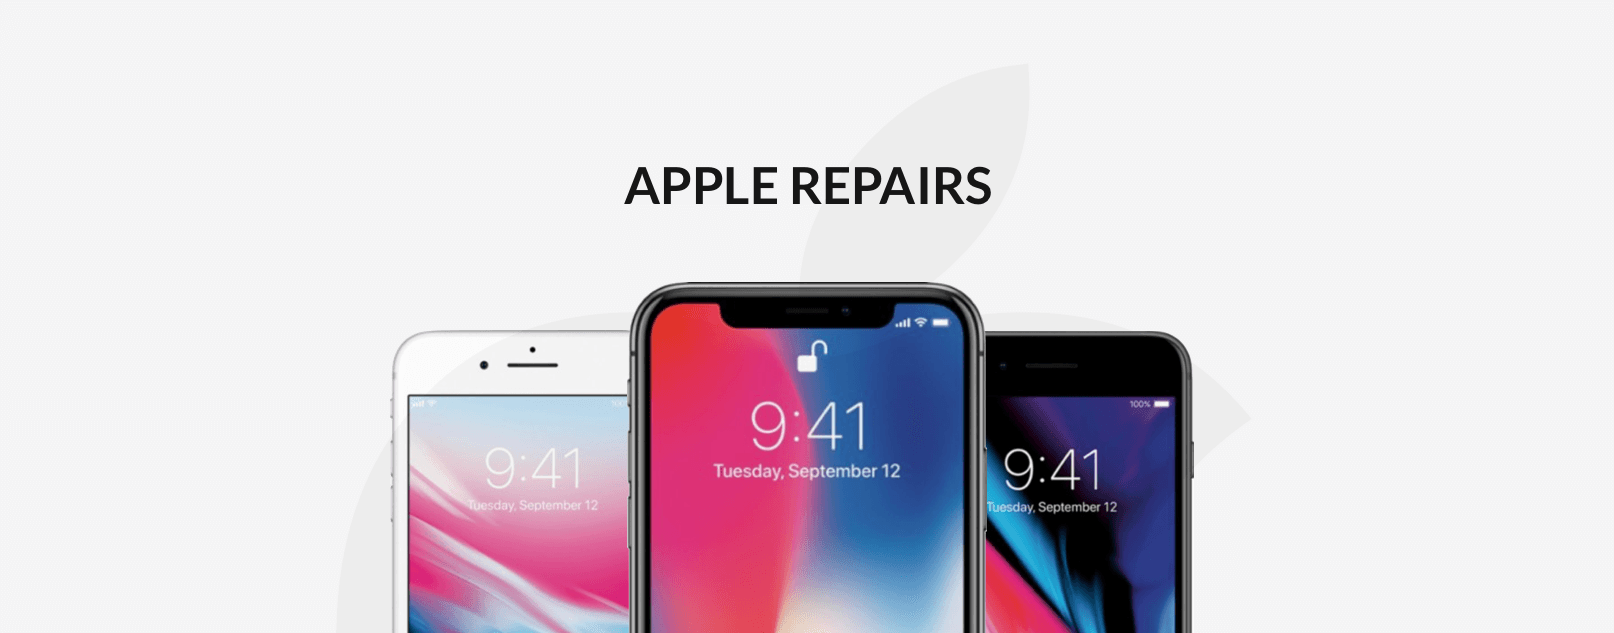 Three iPhones with Apple Repairs title